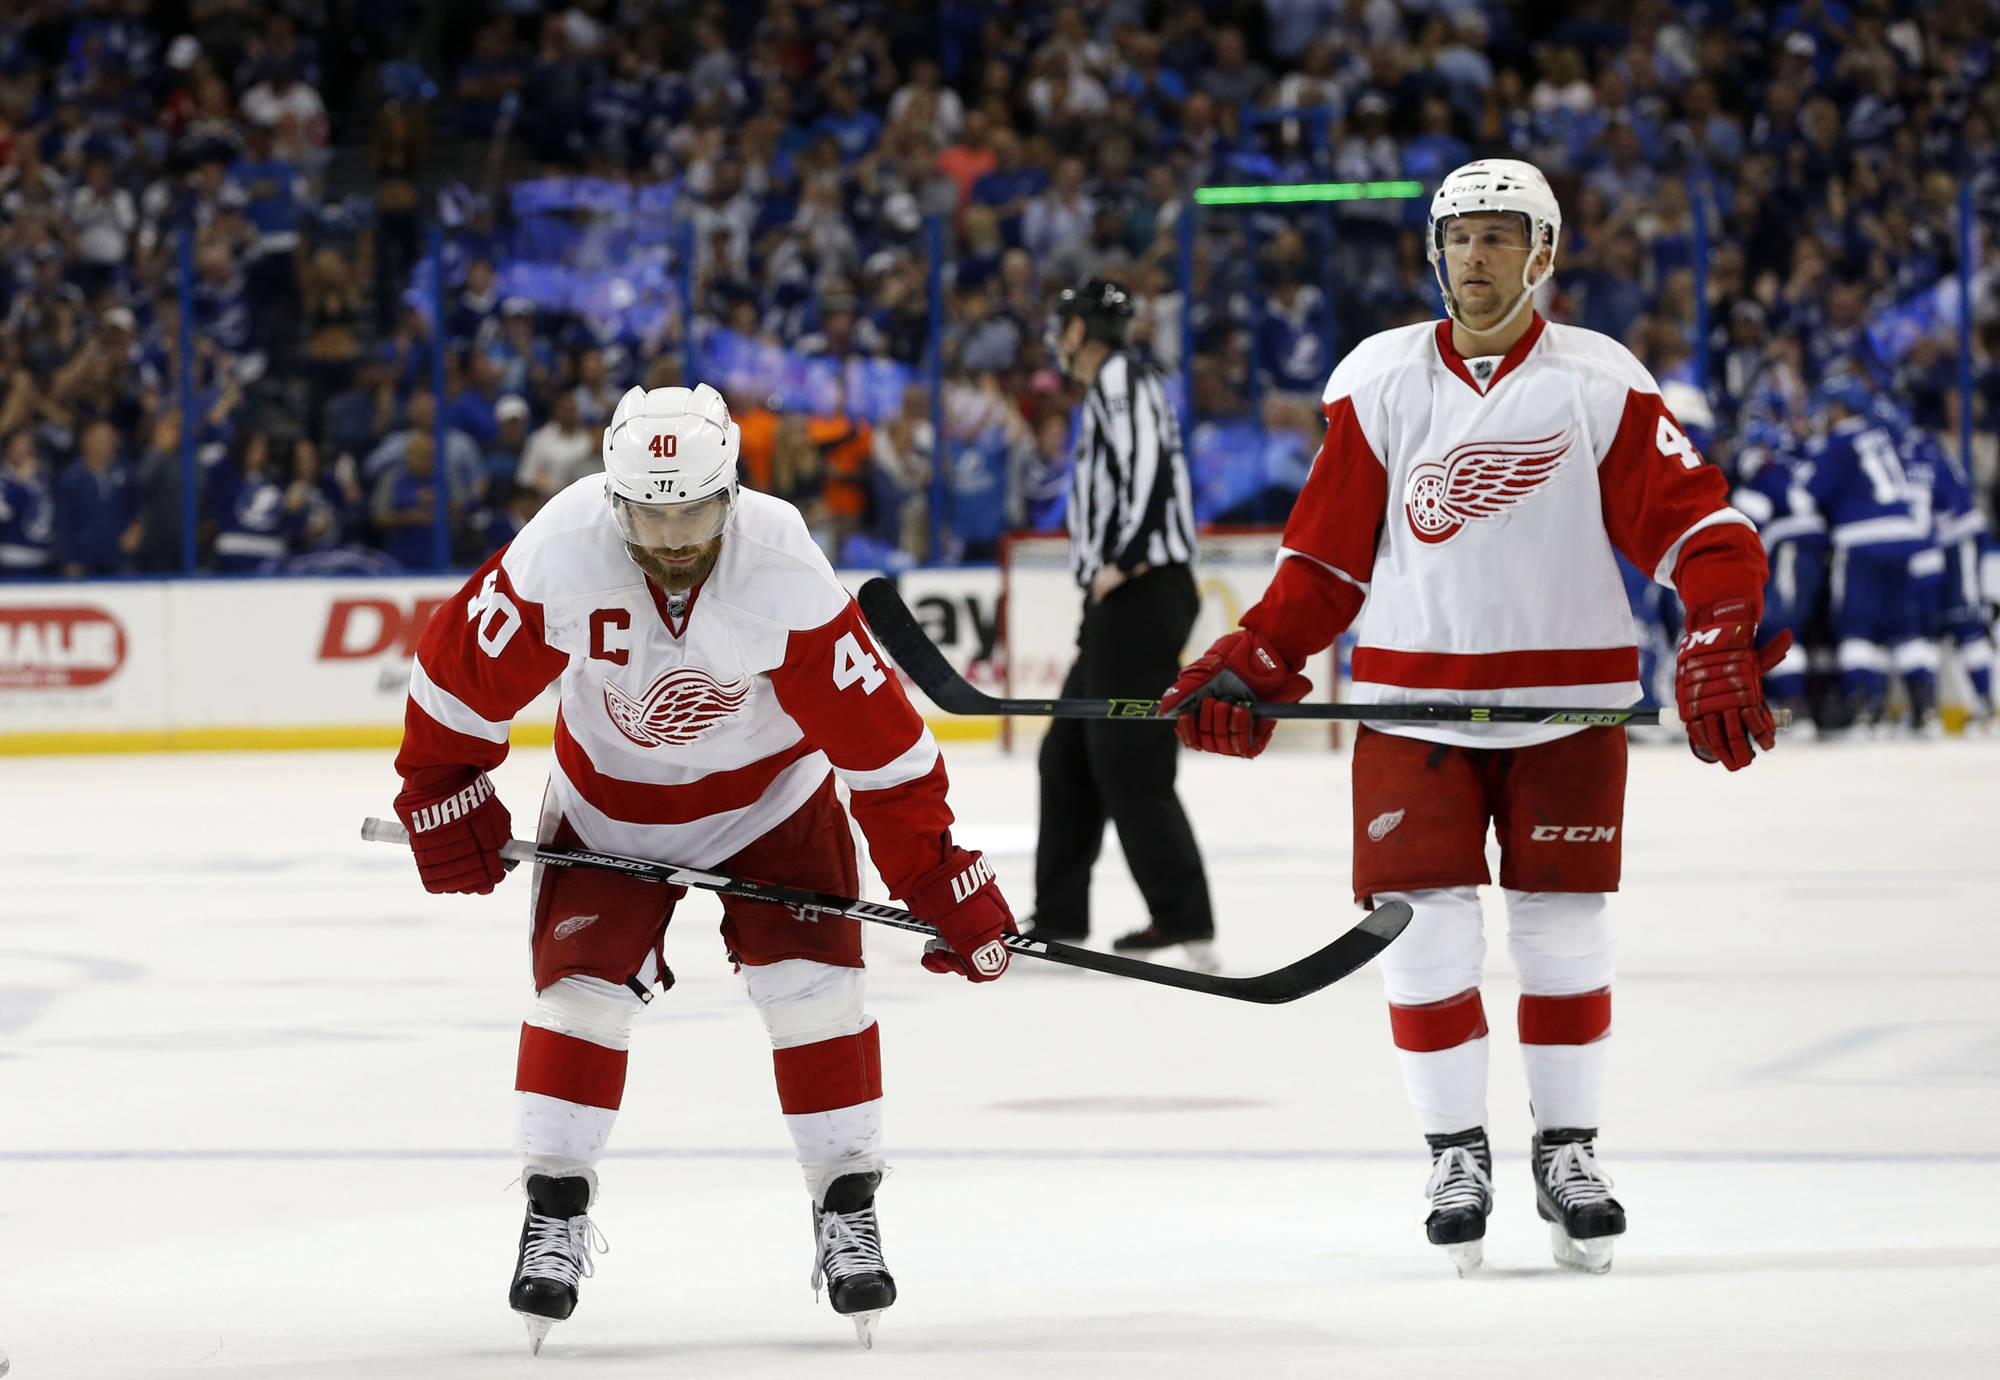 The Self-destruction of the Detroit Red Wings